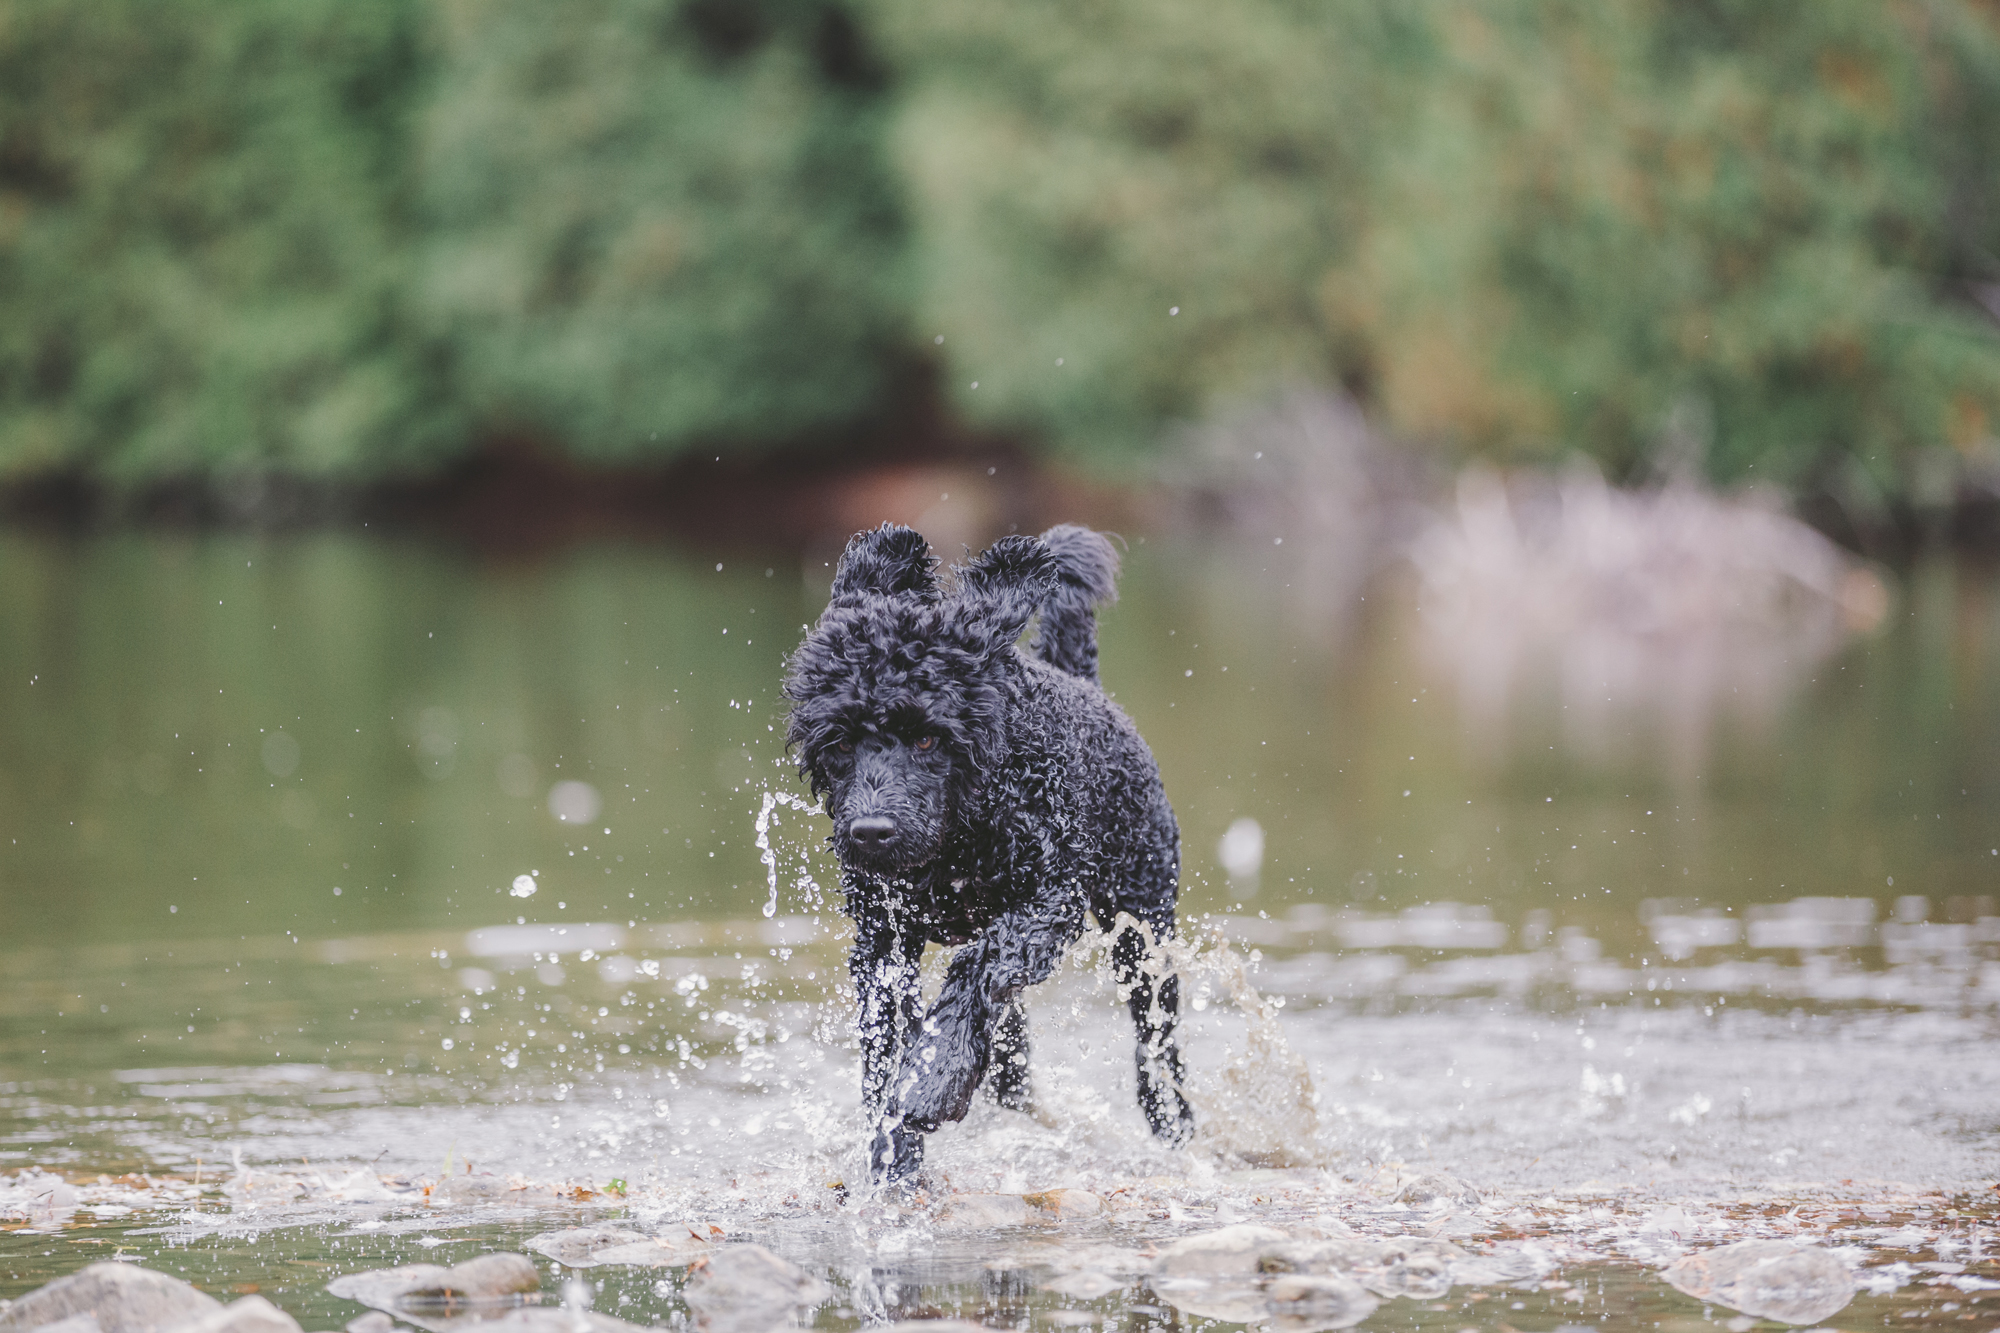 Wow, how do I photograph my dog running?